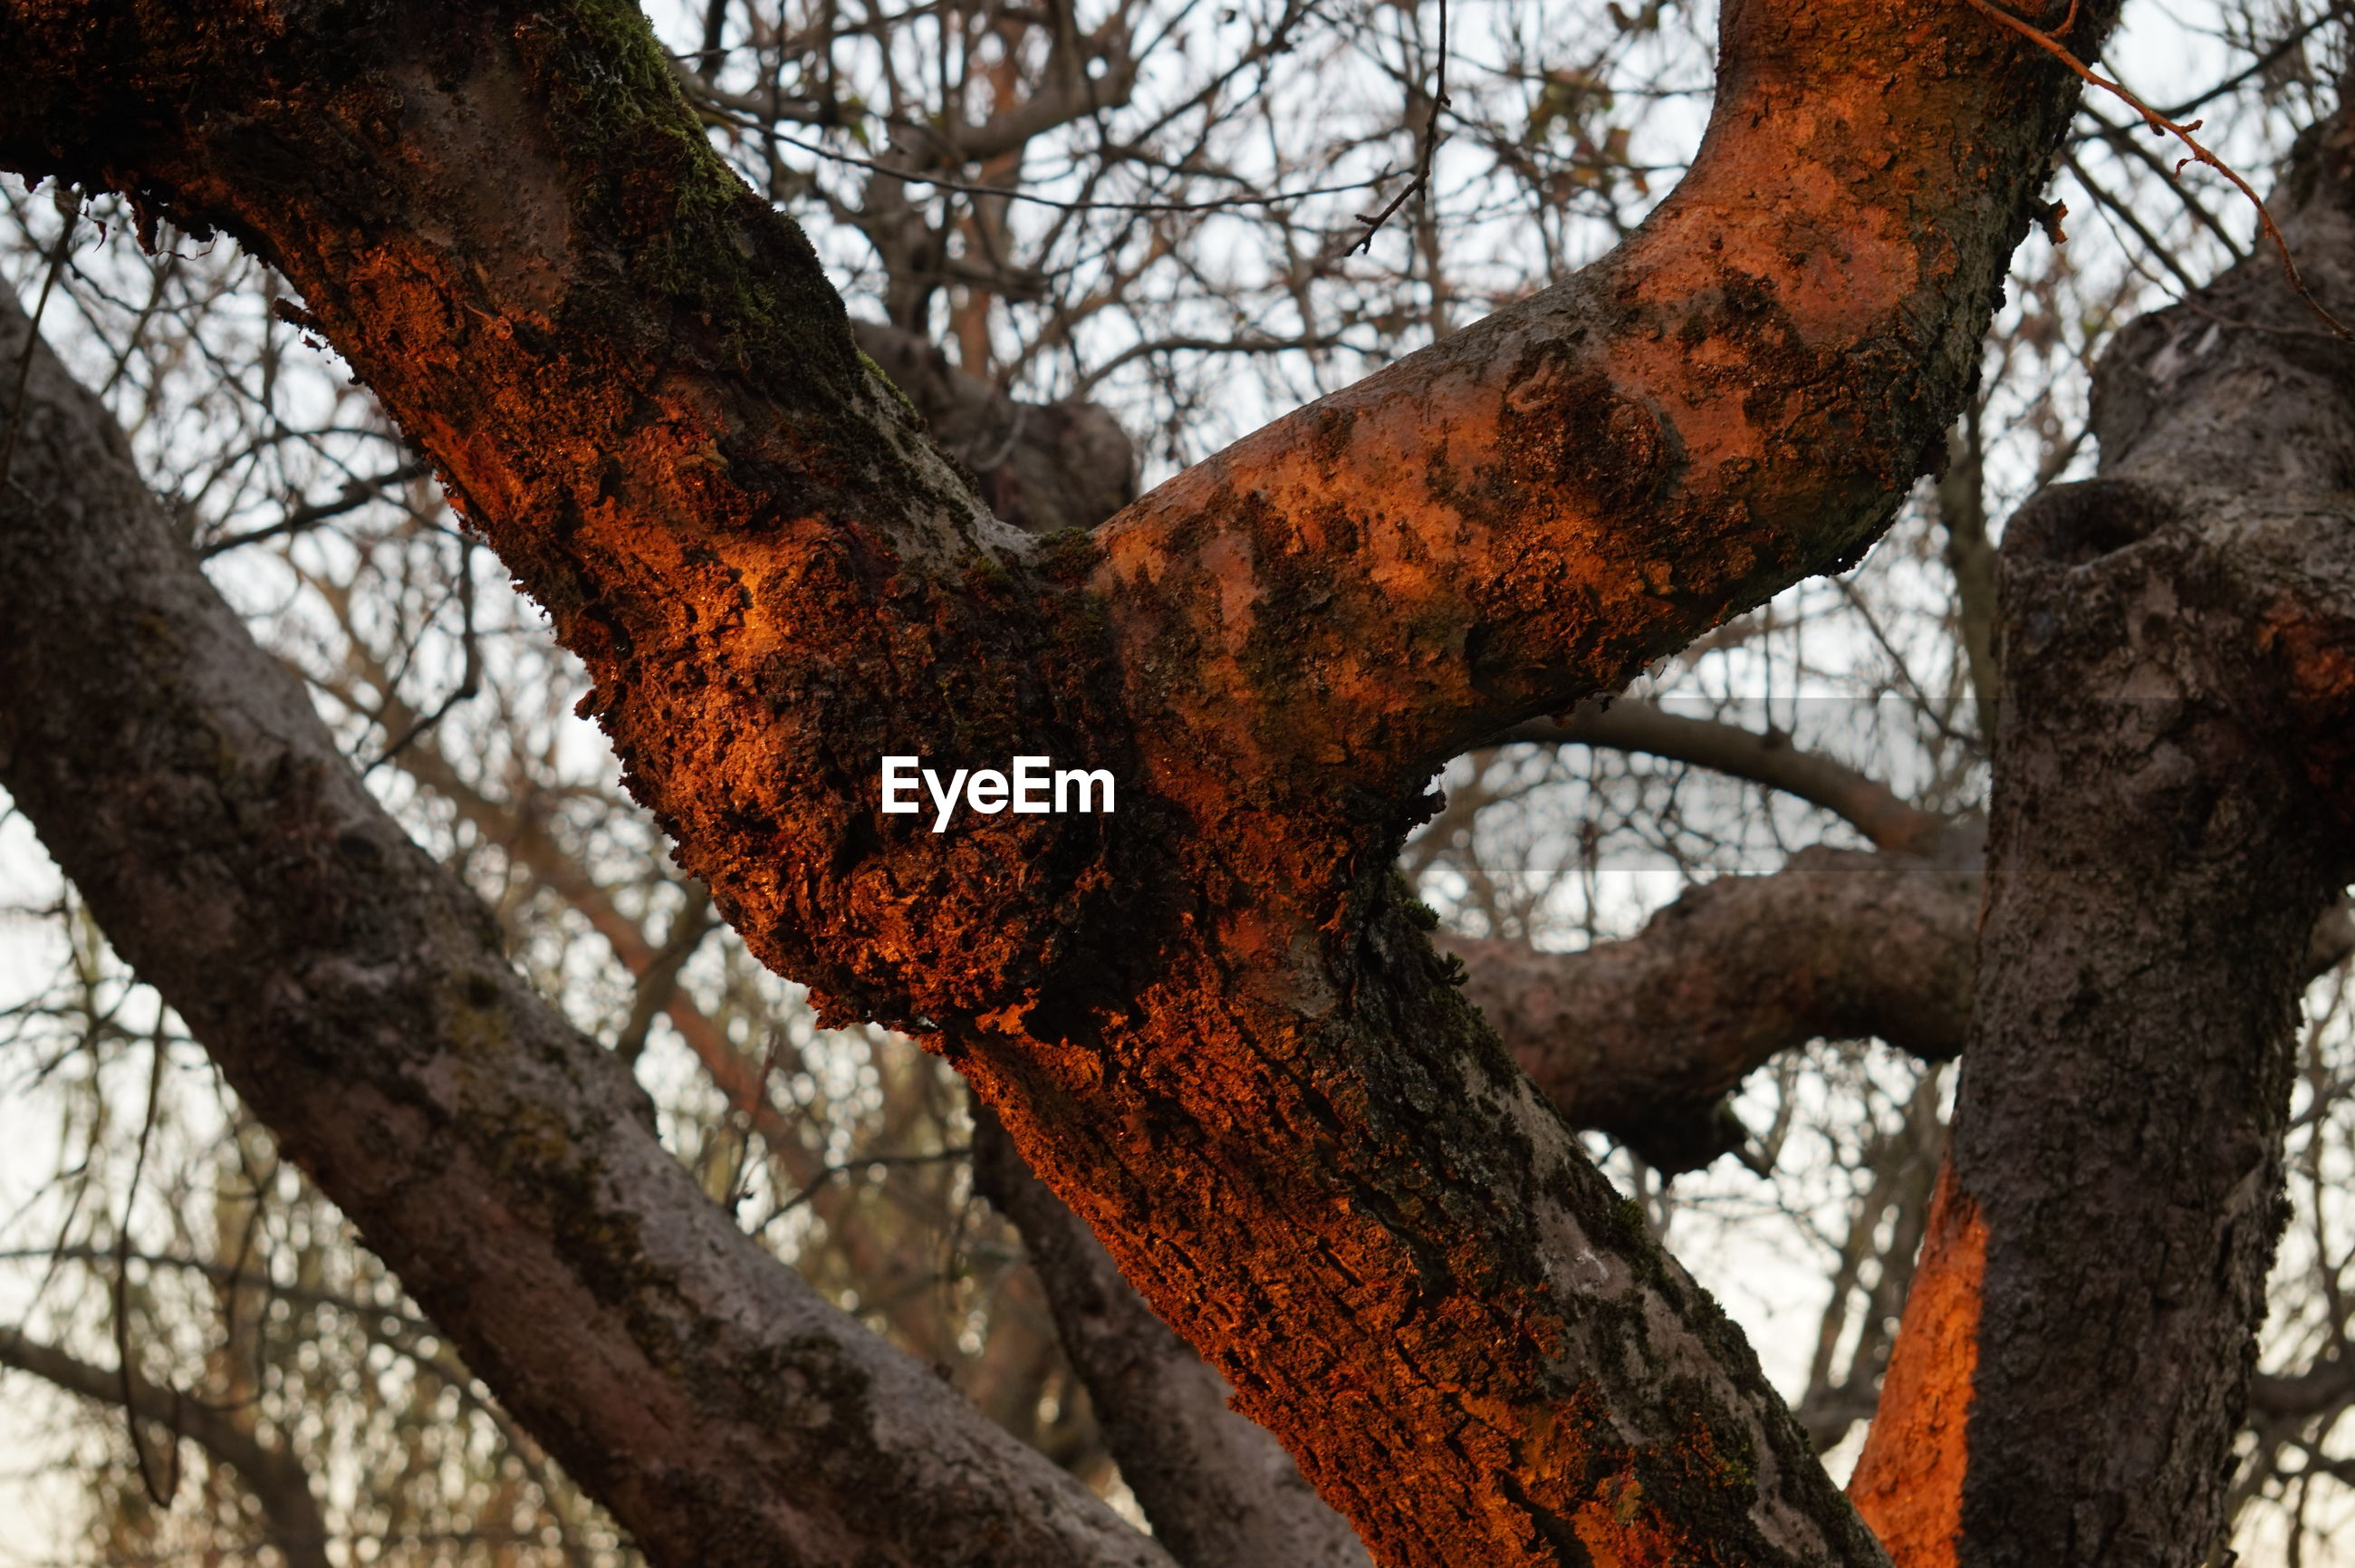 tree, tree trunk, branch, close-up, low angle view, nature, bare tree, focus on foreground, day, textured, sky, bark, wood - material, growth, outdoors, tranquility, no people, part of, weathered, beauty in nature